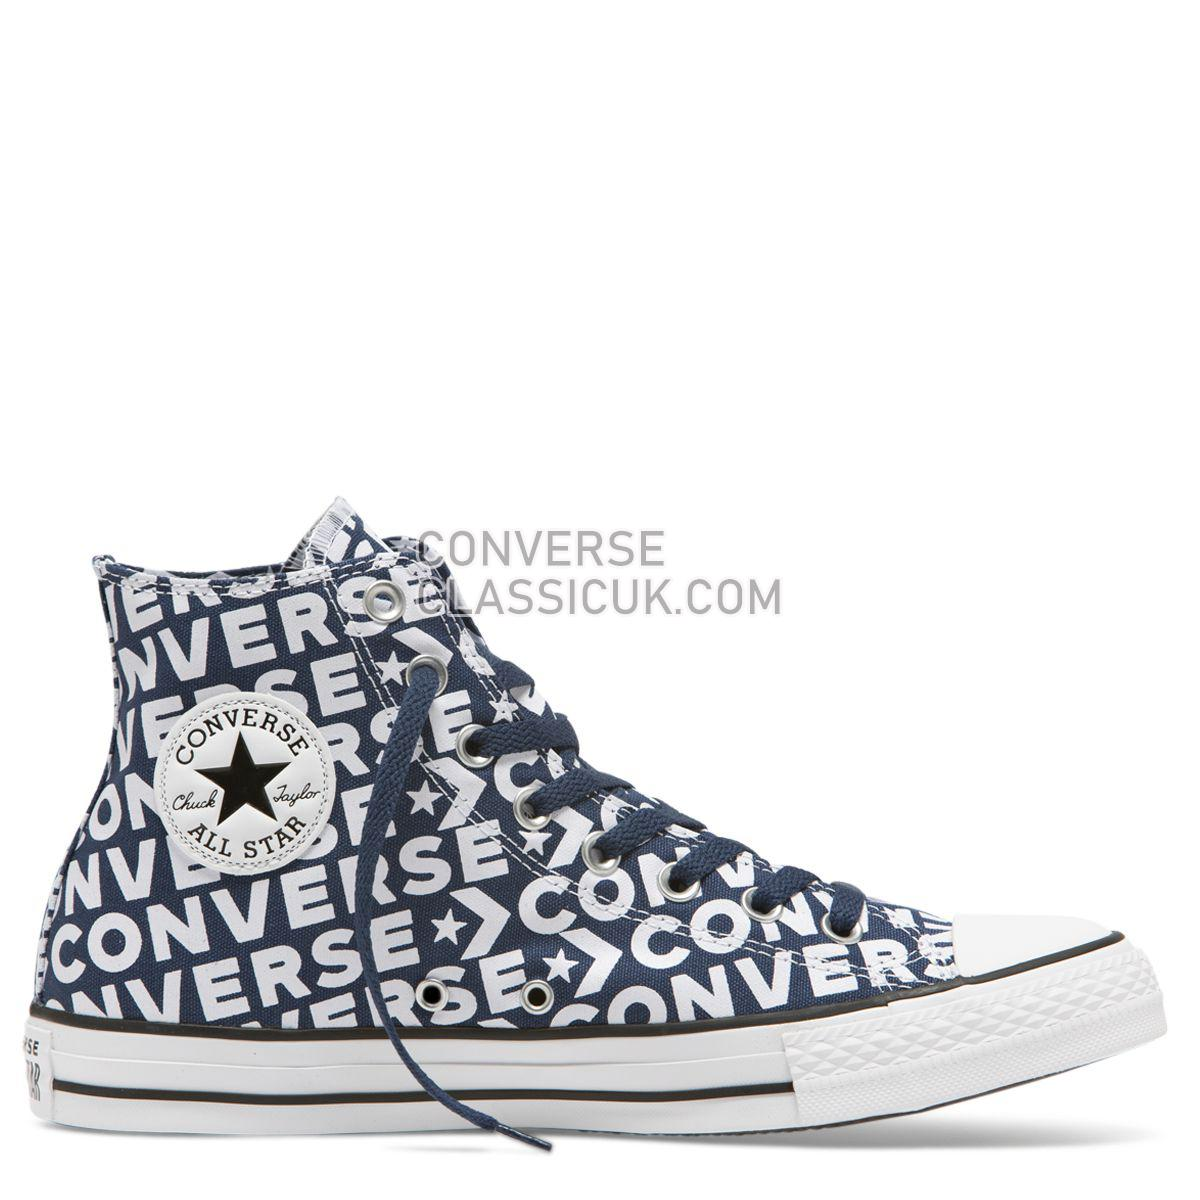 Converse Chuck Taylor All Star Wordmark High Top Navy Mens Womens Unisex 163952 Navy/White/White Shoes